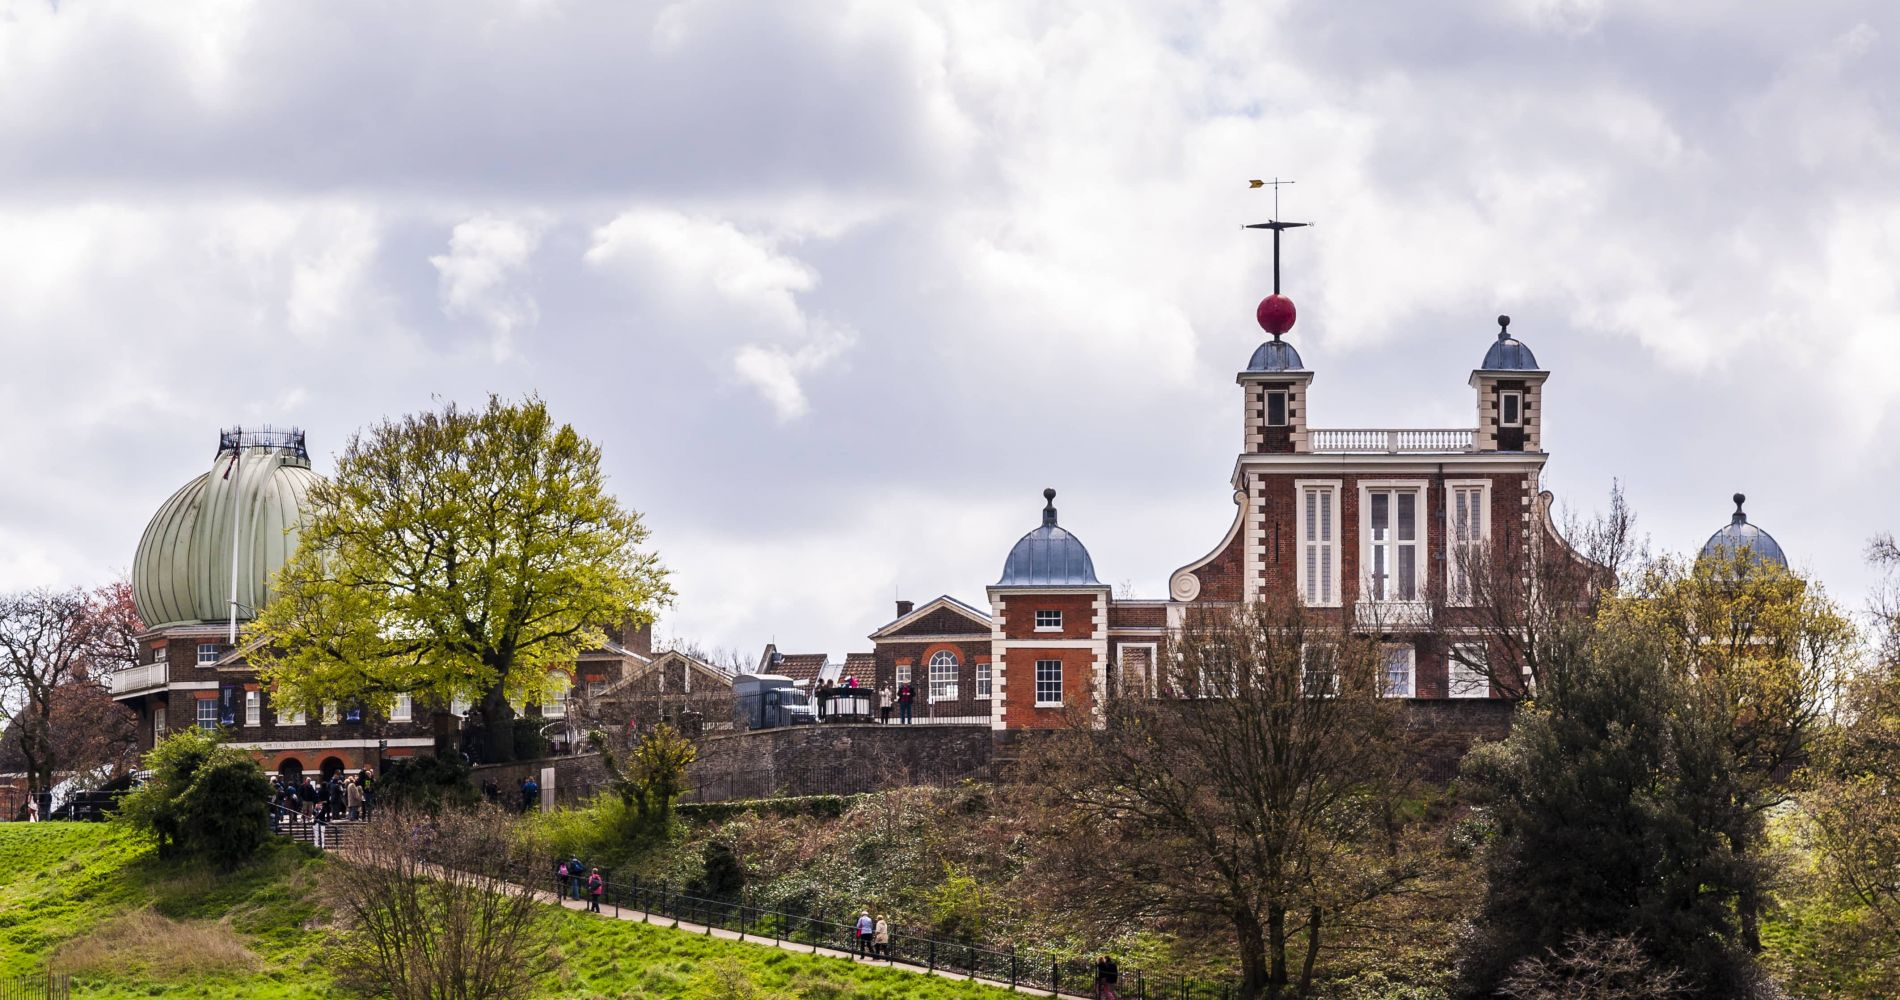 Visit London with Royal Observatory Greenwich